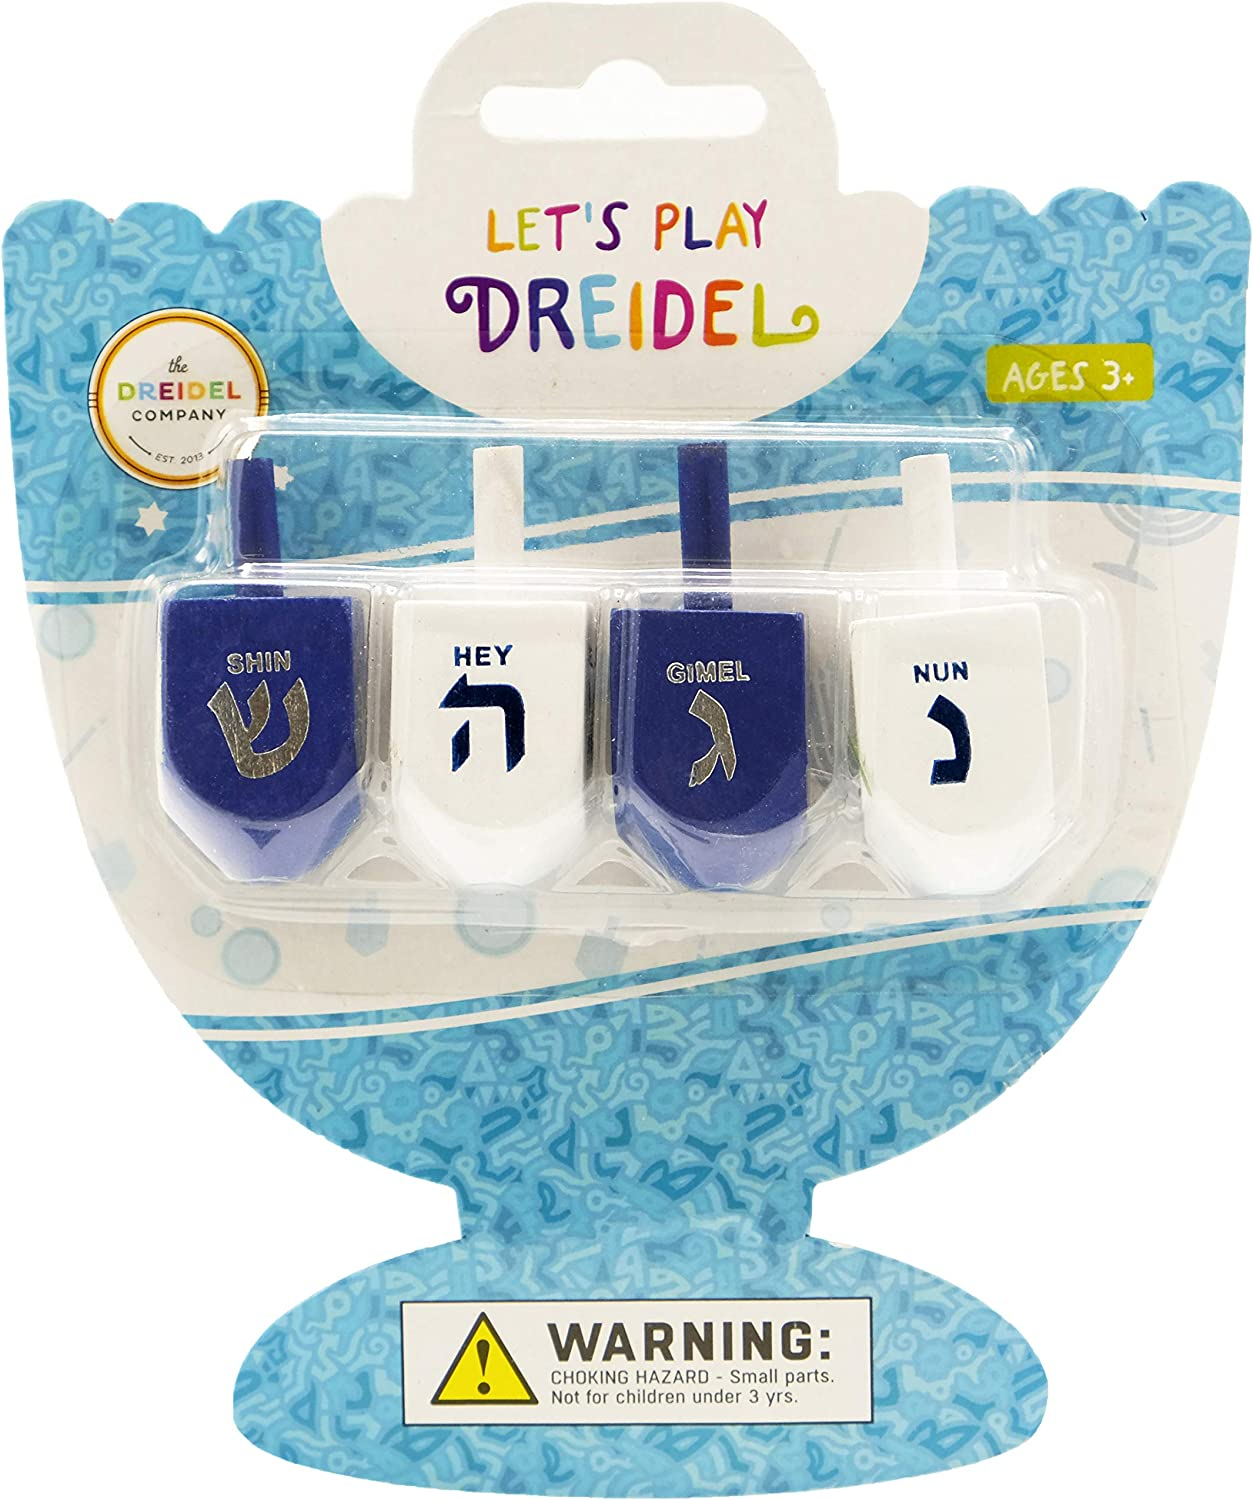 Made of Thick Card Stock and Printed in Silver Foil and Chanuka White and Sky Blue Colors for Hours of Fun Set of 3 Dreidels Assembly Instructions and Straws Included Clearstory Hannuka Dreidel